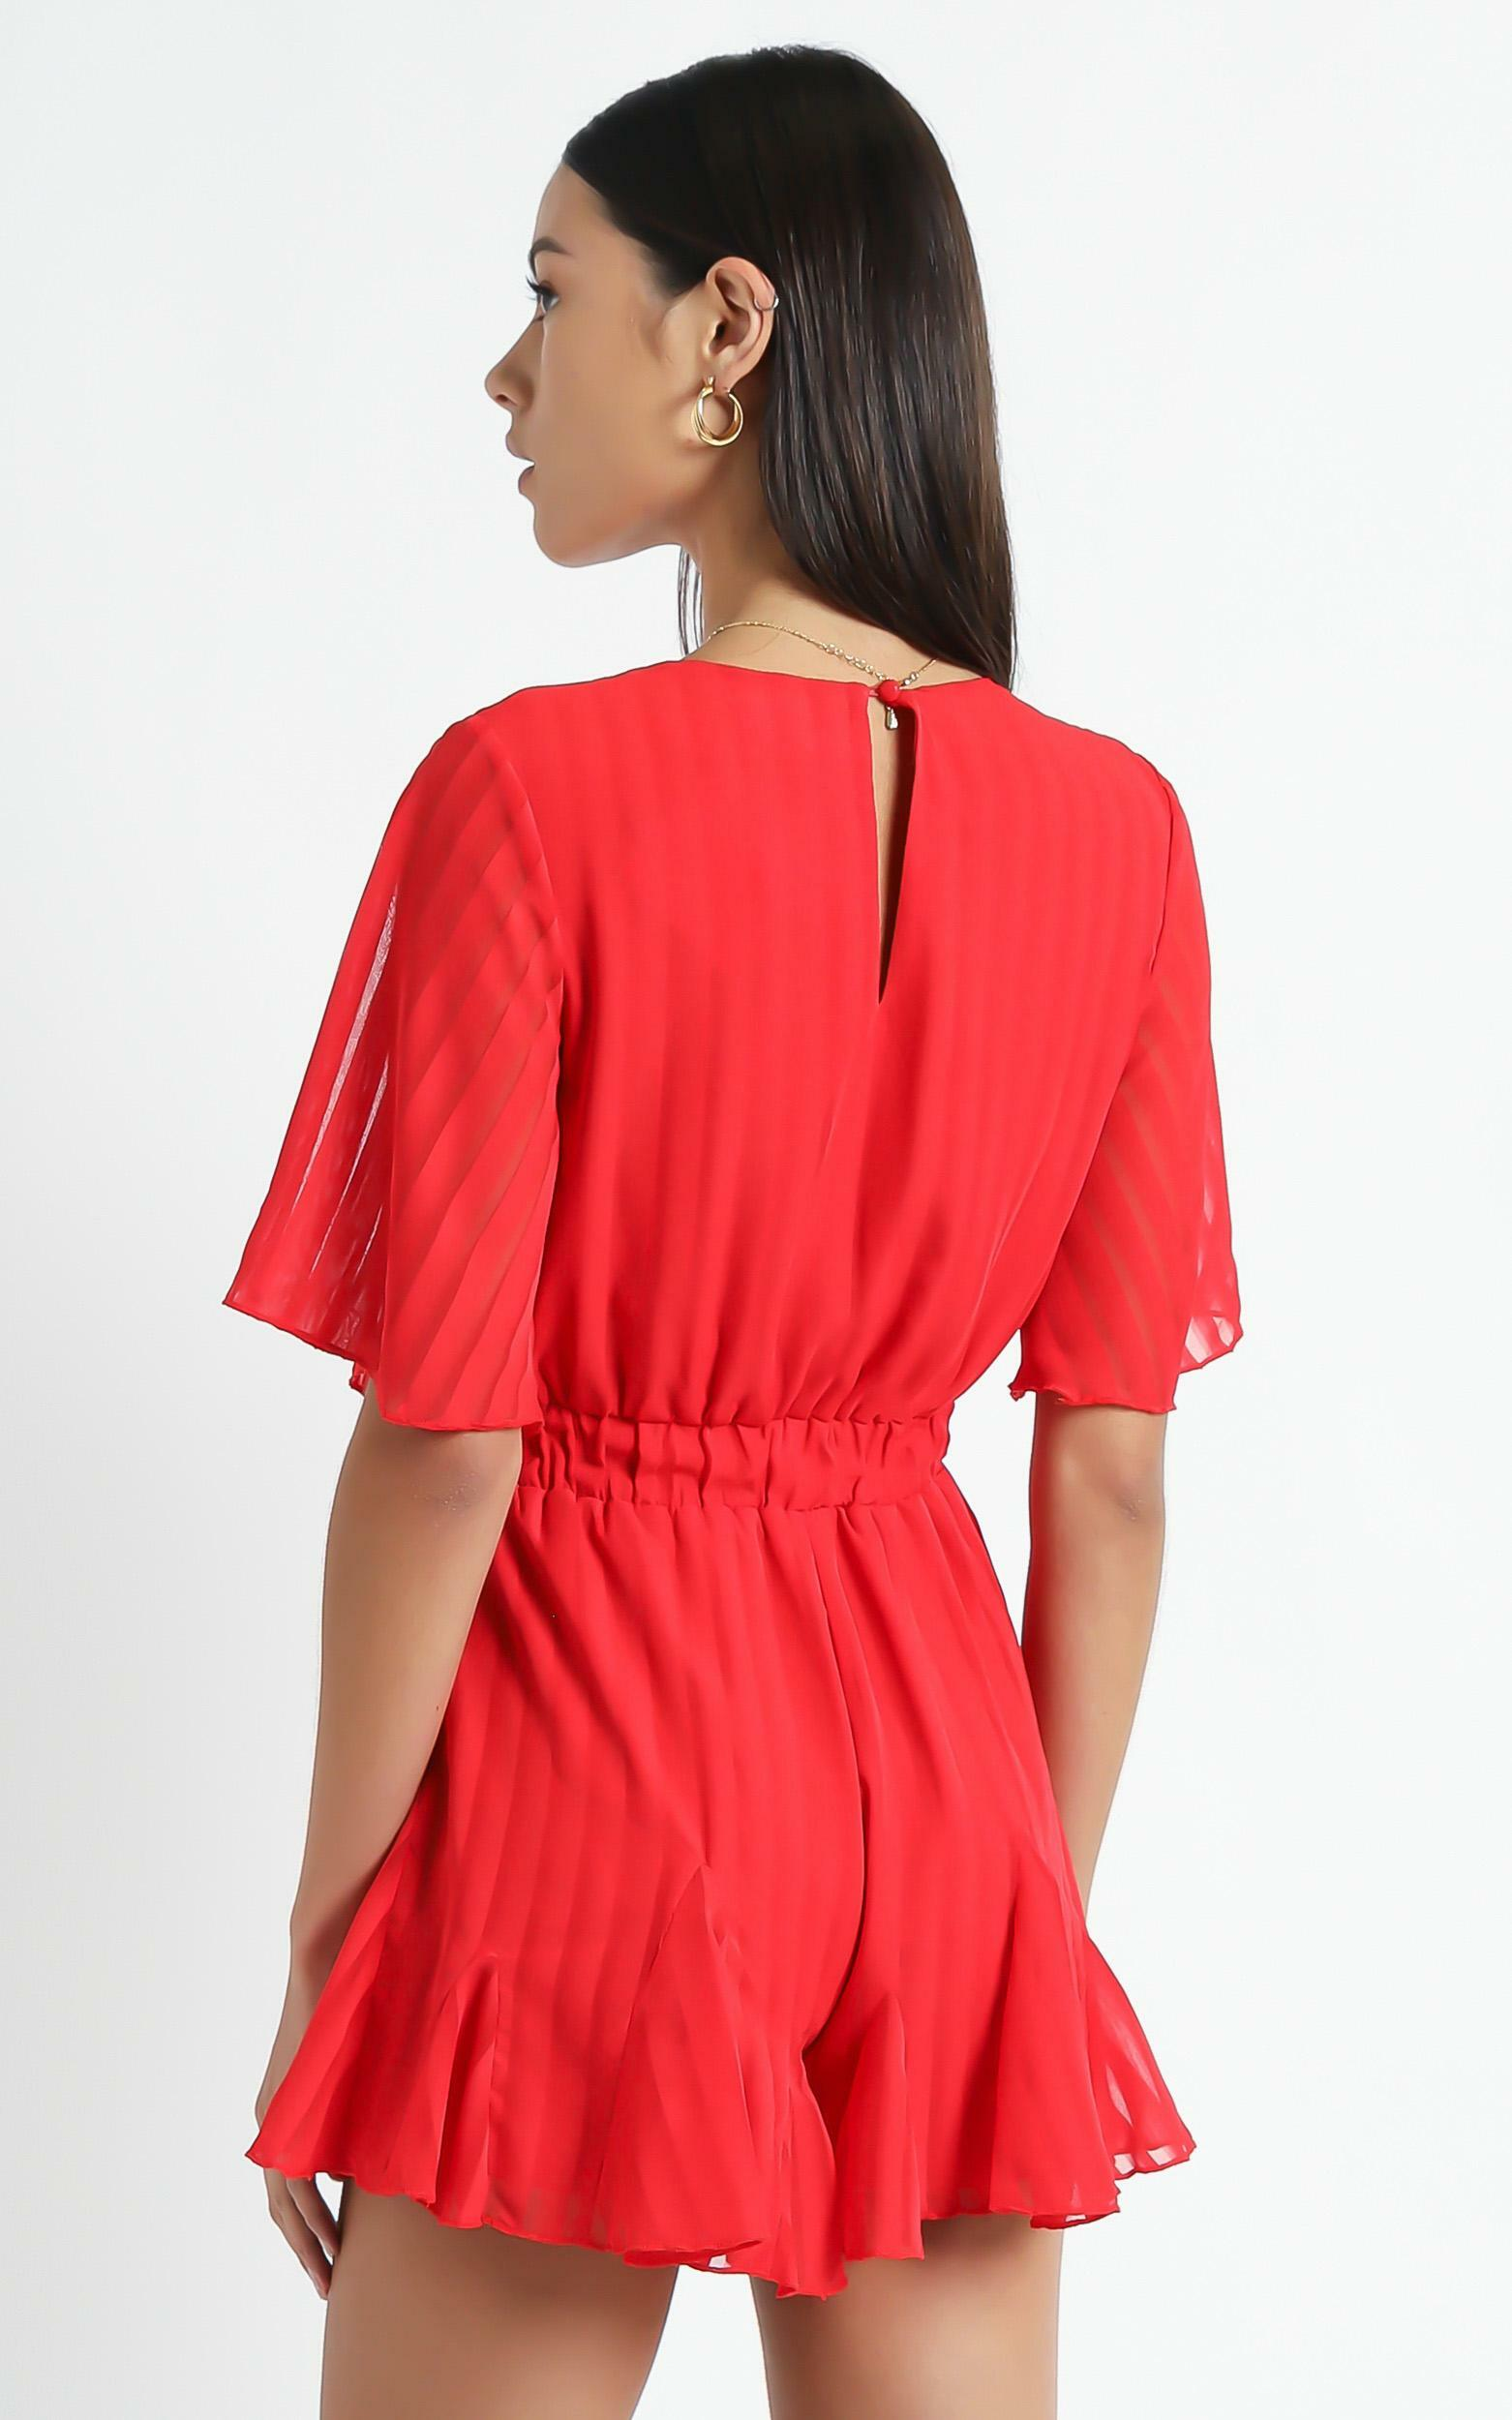 Play On My Heart Playsuit In Red - 4 (XXS), Red, hi-res image number null